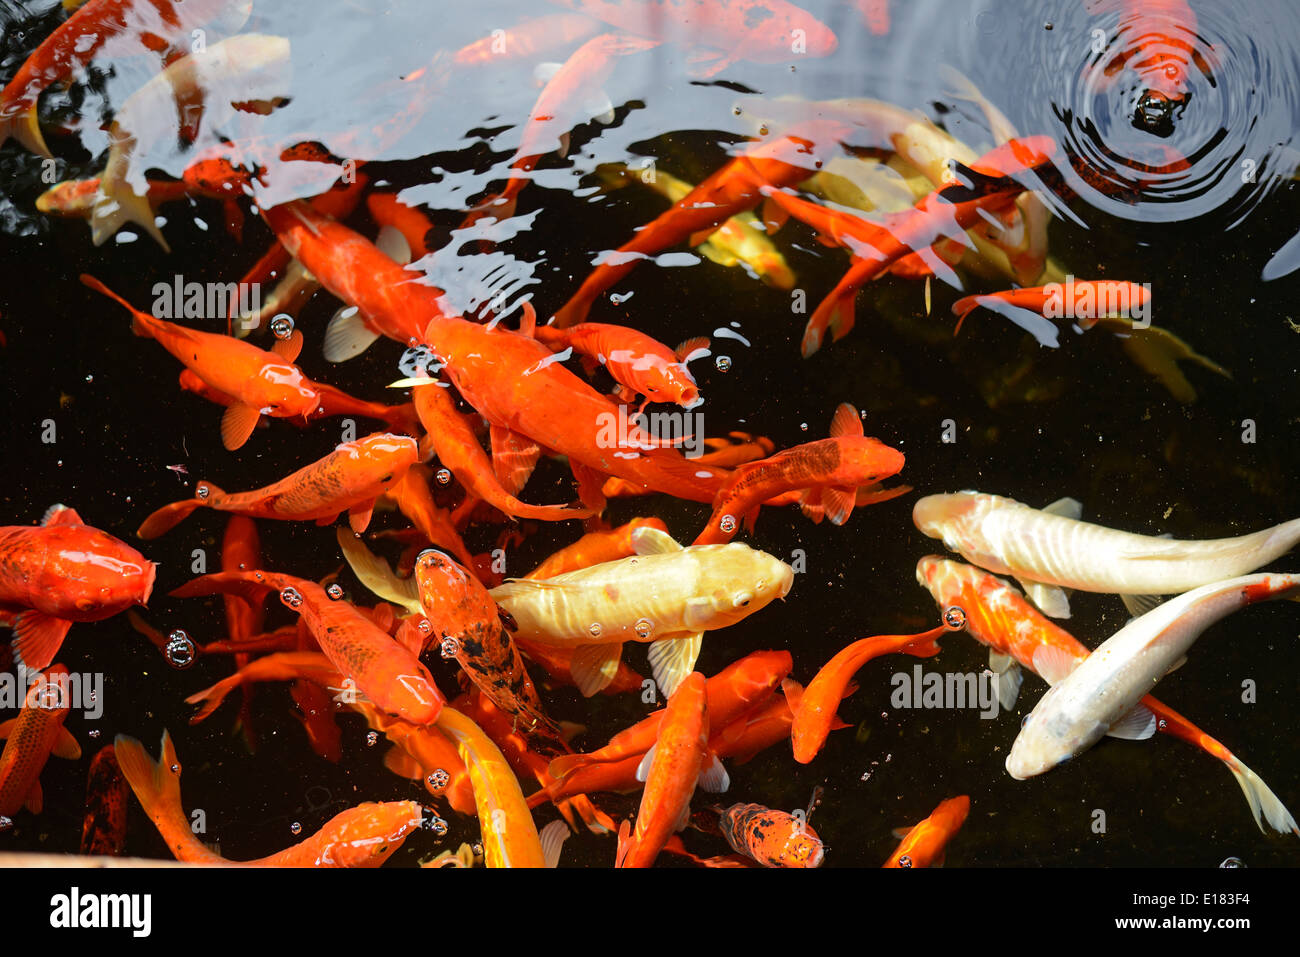 Gold Fish Pond Stock Photos & Gold Fish Pond Stock Images - Alamy